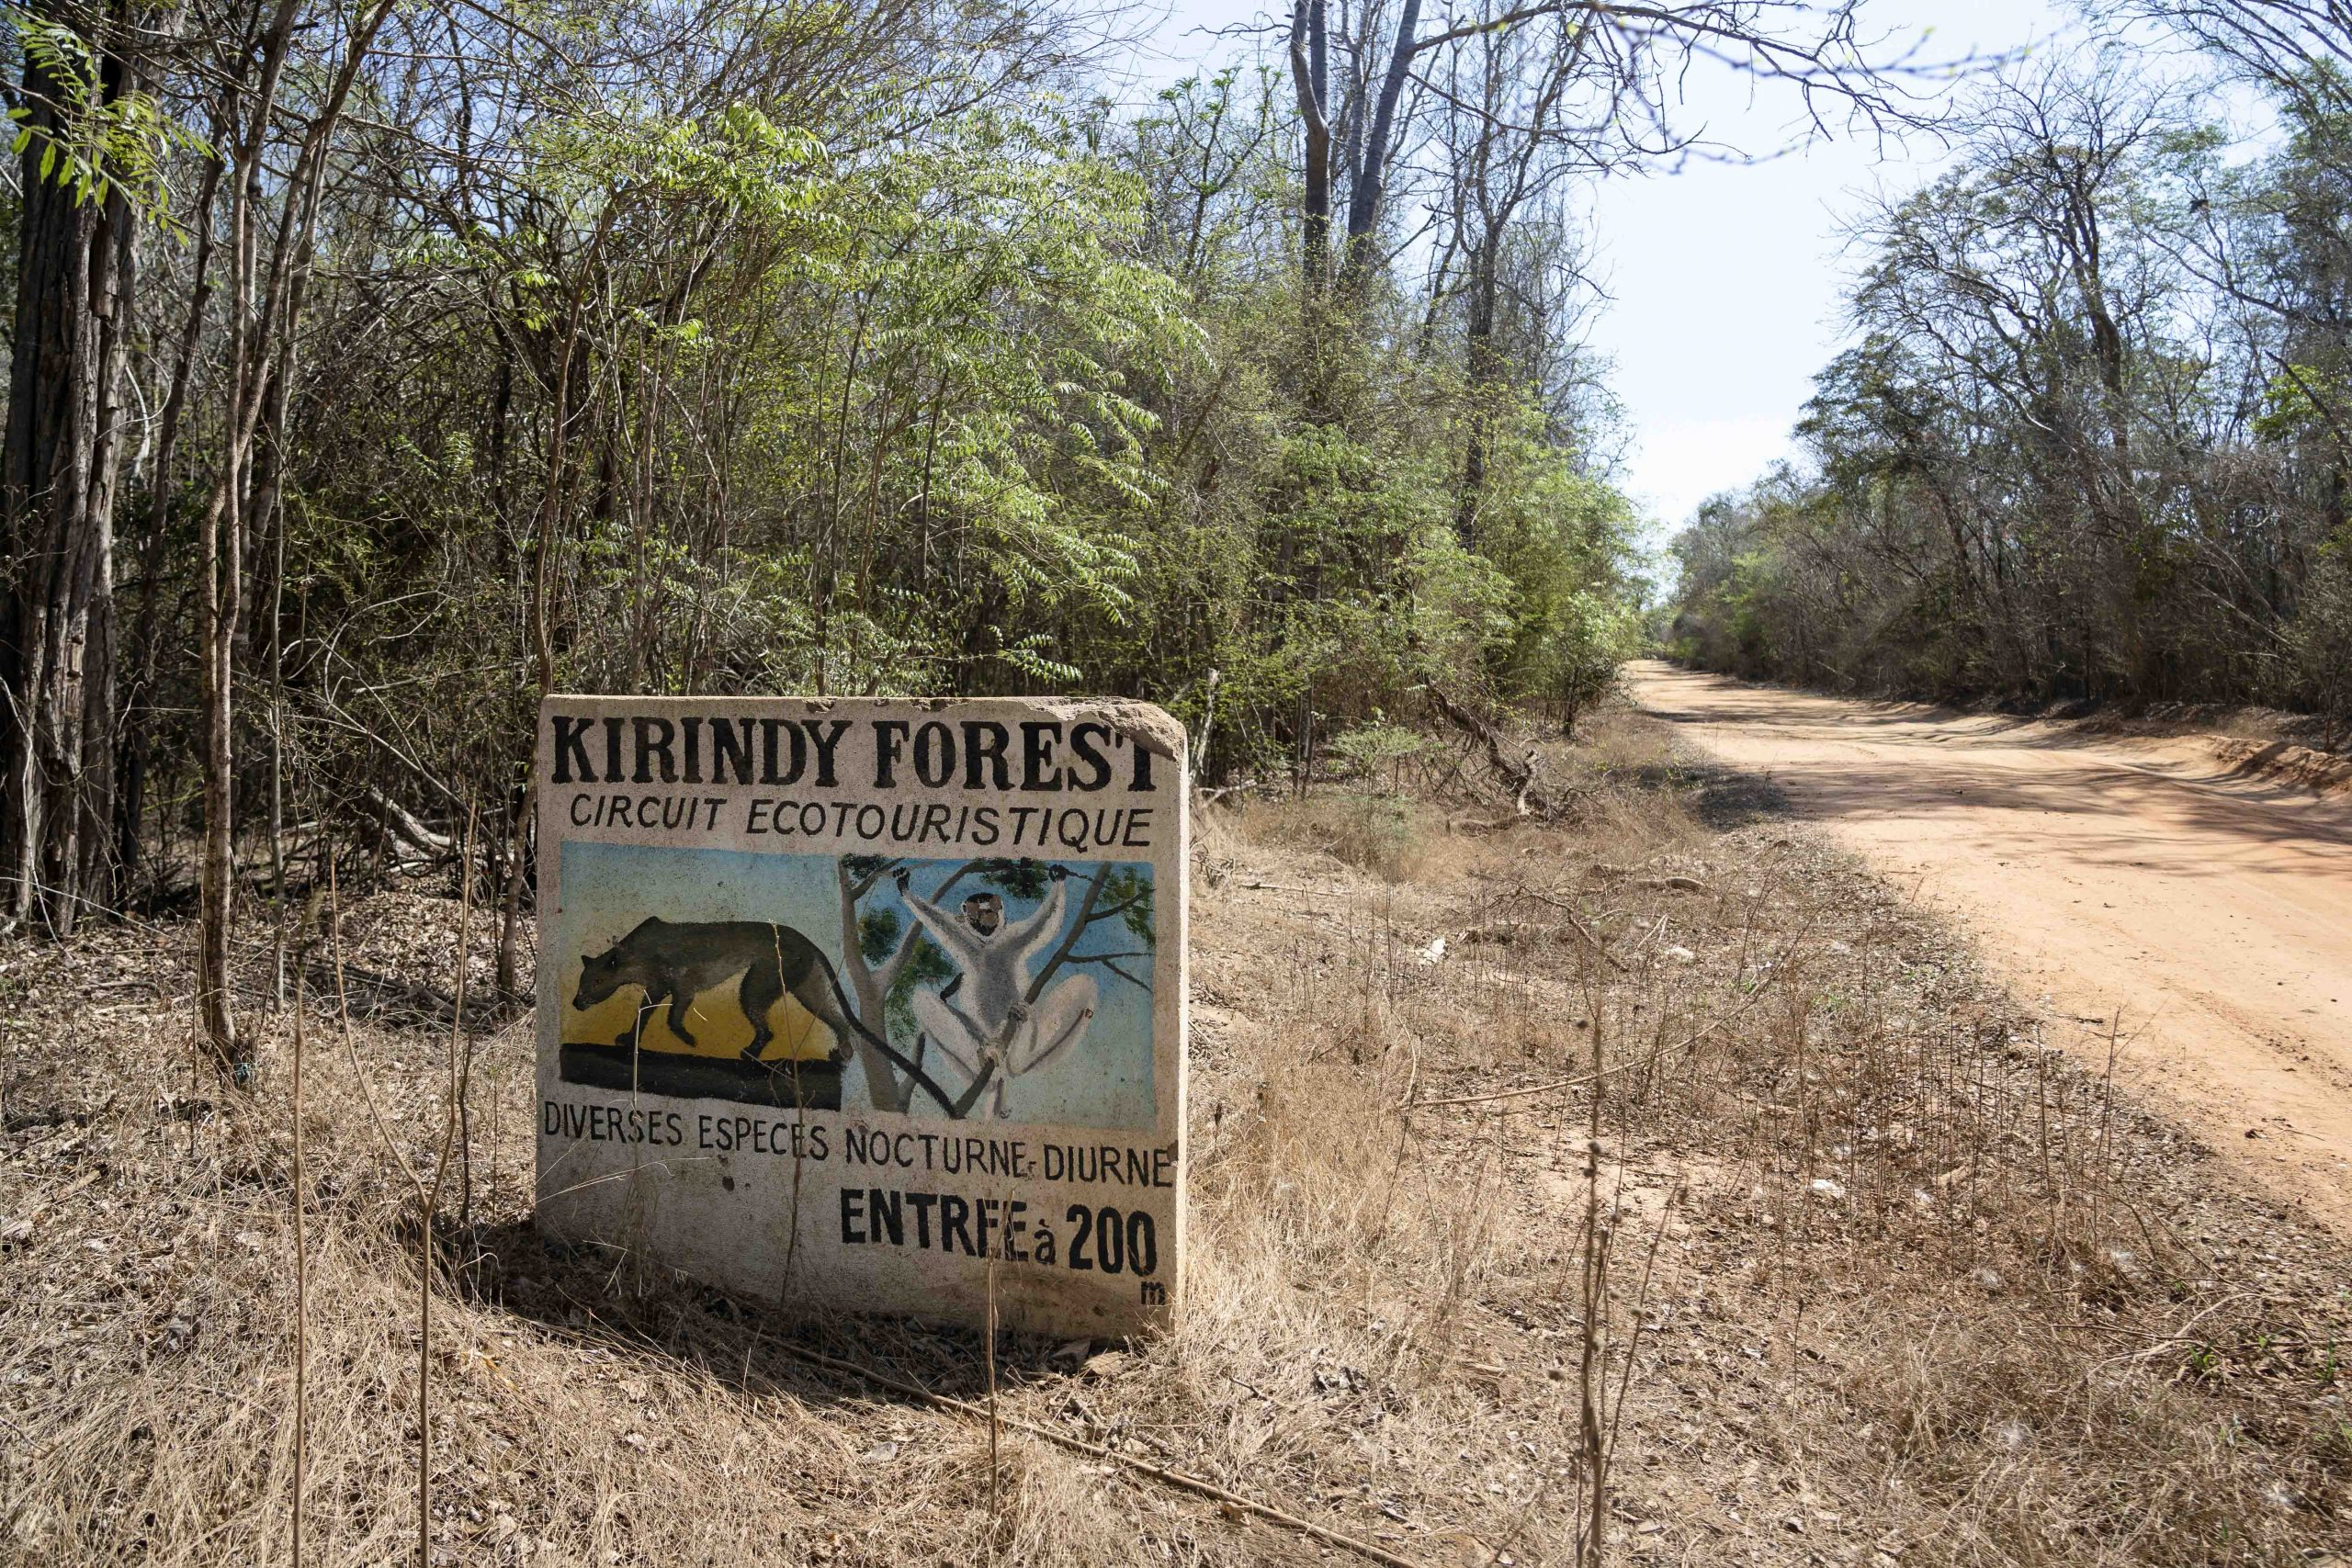 A sign marks the entrance to Kirindy Forest, a private reserve on the western coast of Madagascar.